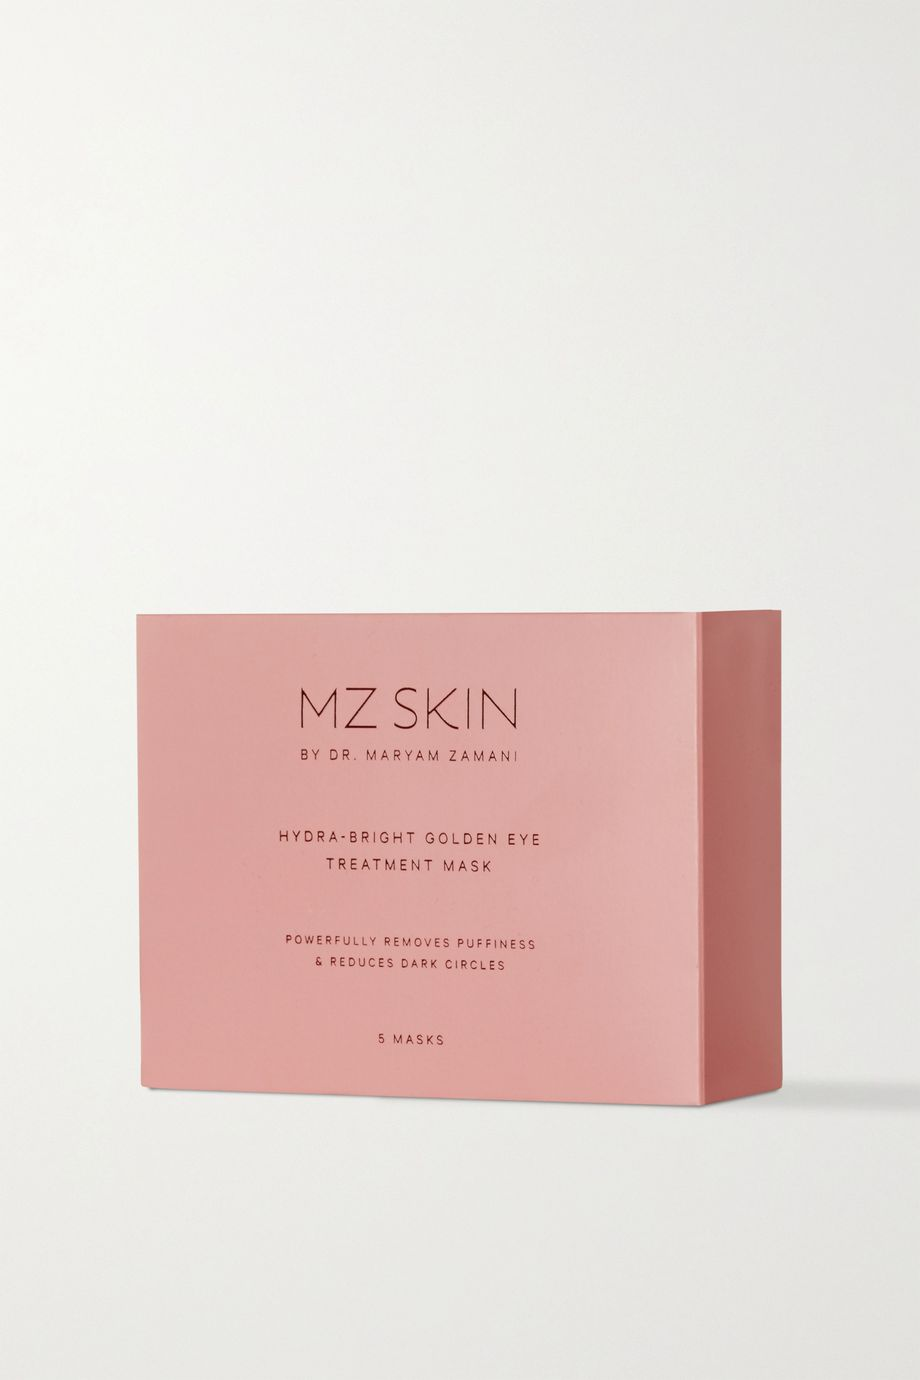 MZ SKIN Hydra-Bright Golden Eye Treatment Mask x 5